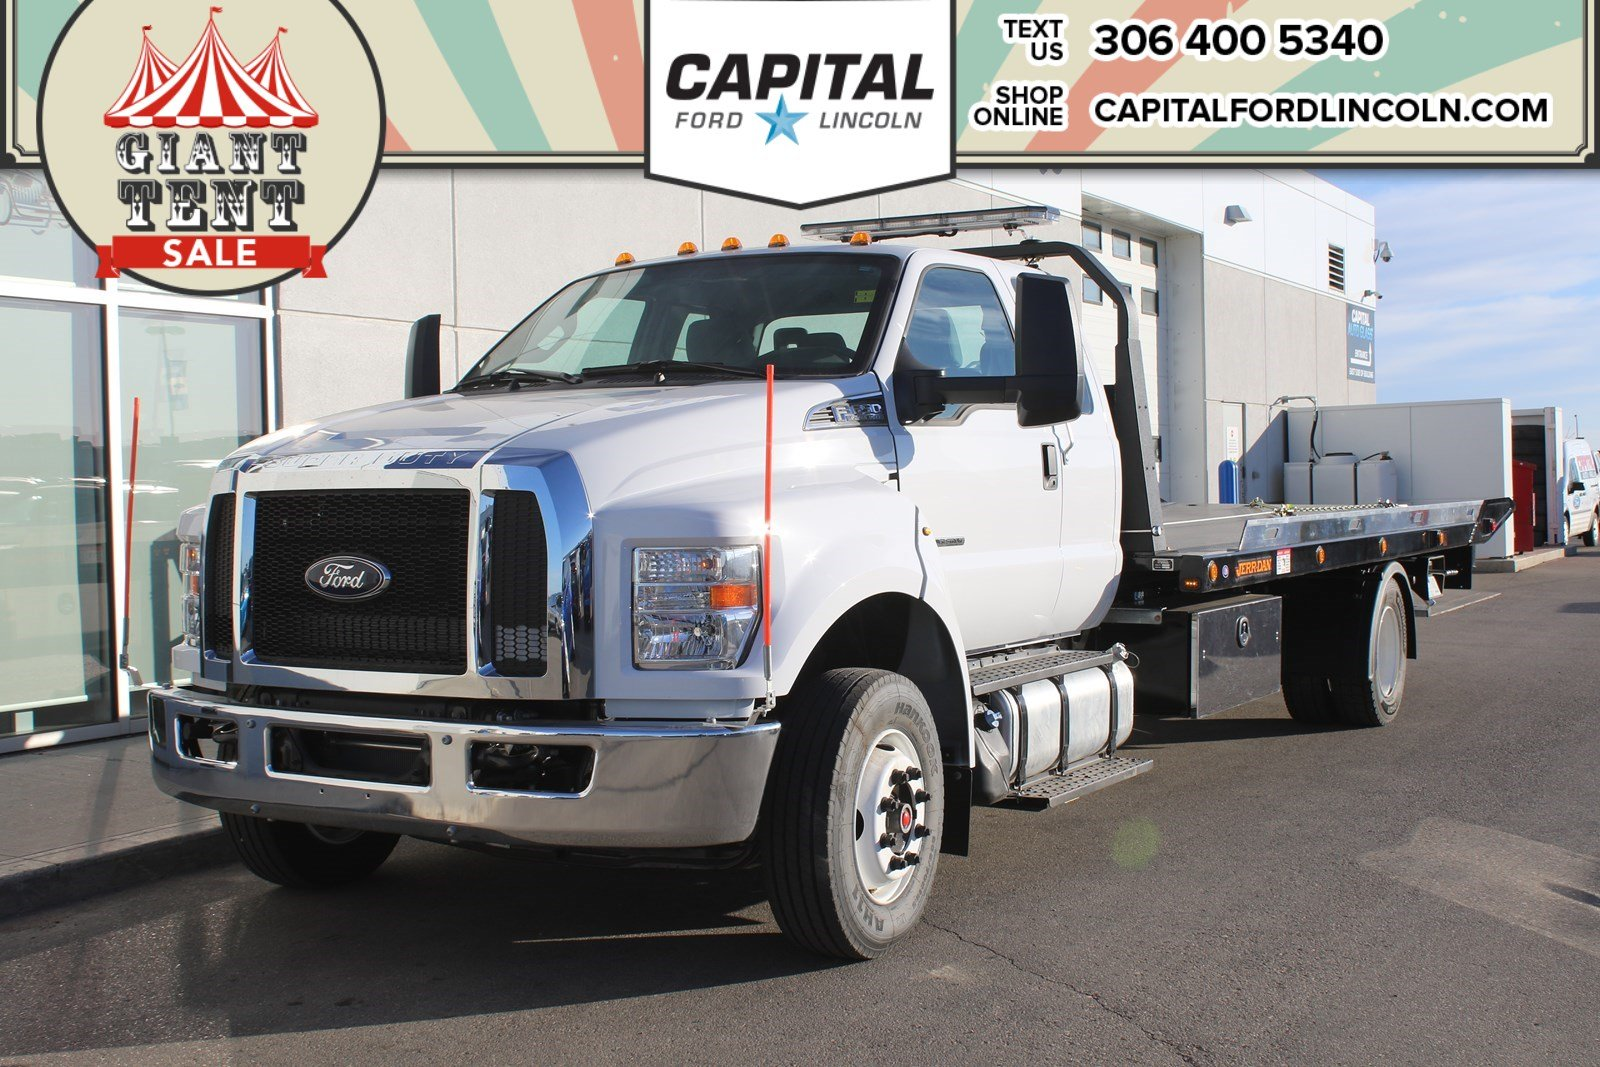 Pre-Owned 2018 Ford F-650 Supercab Cab and Chassis